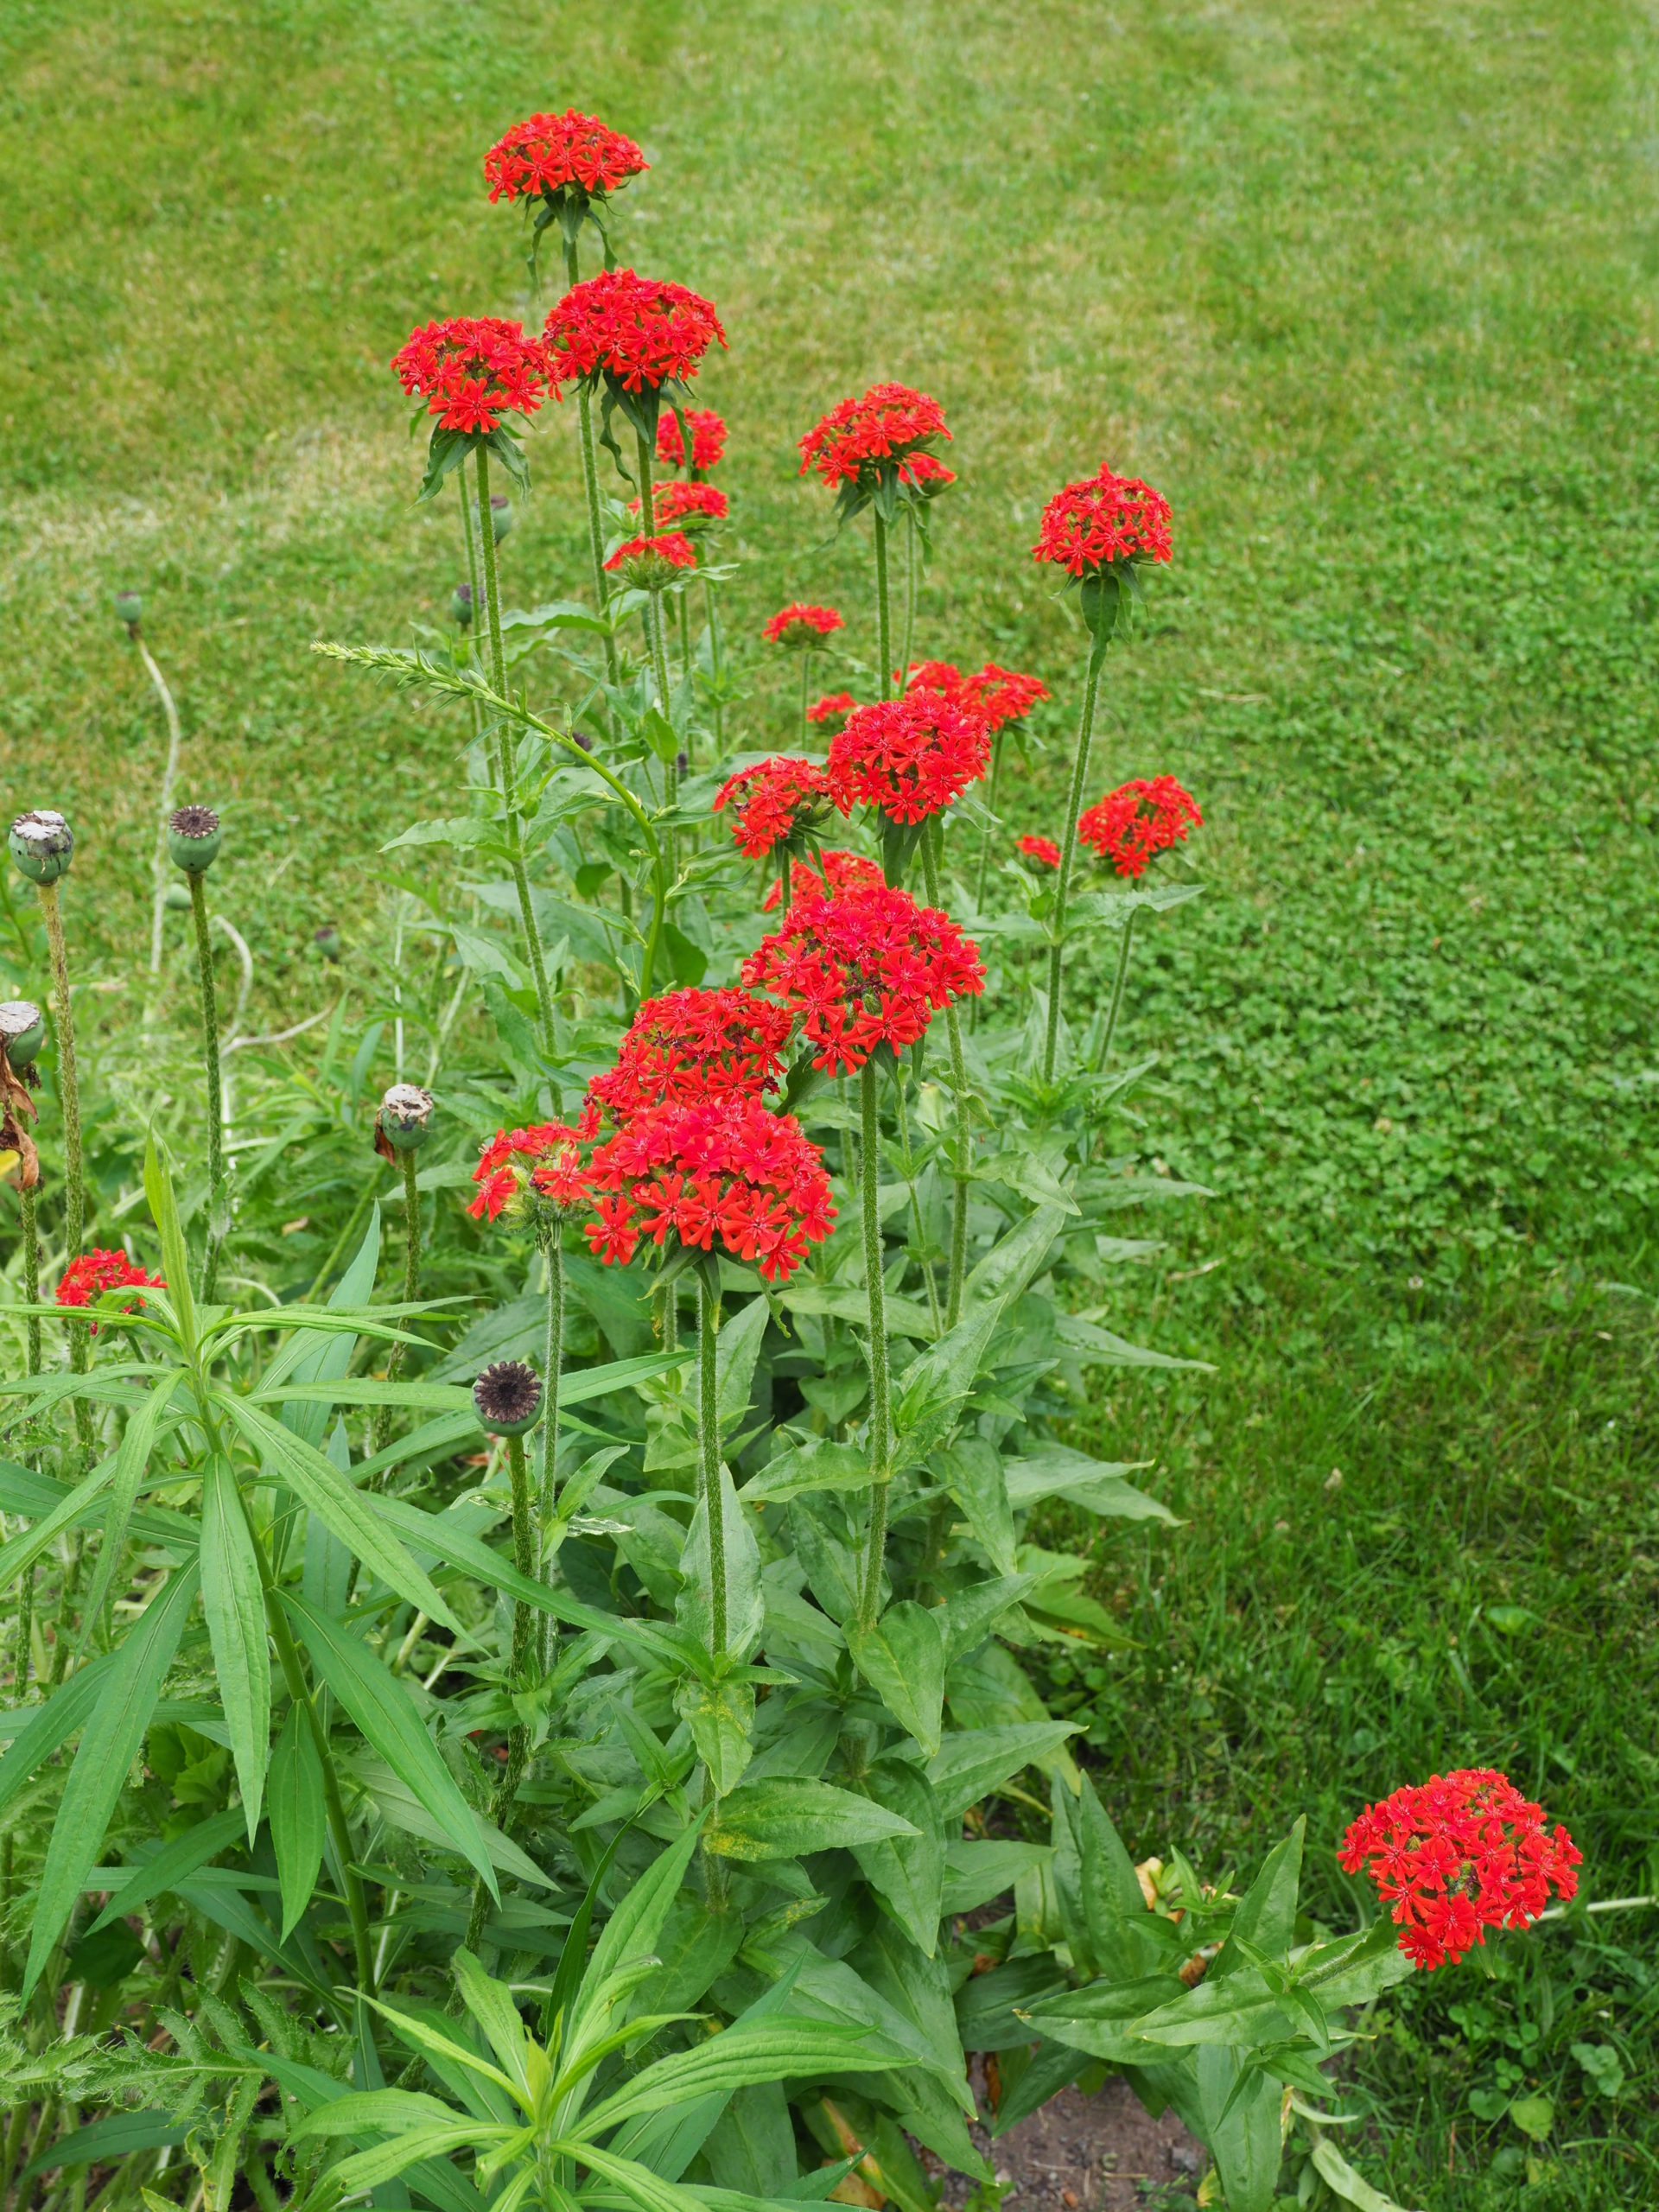 The poppies having faded and left their seed heads atop the flower stems the Lychnis chalcedonica (Maltese cross) begins to fill in and continue the brilliant color display.